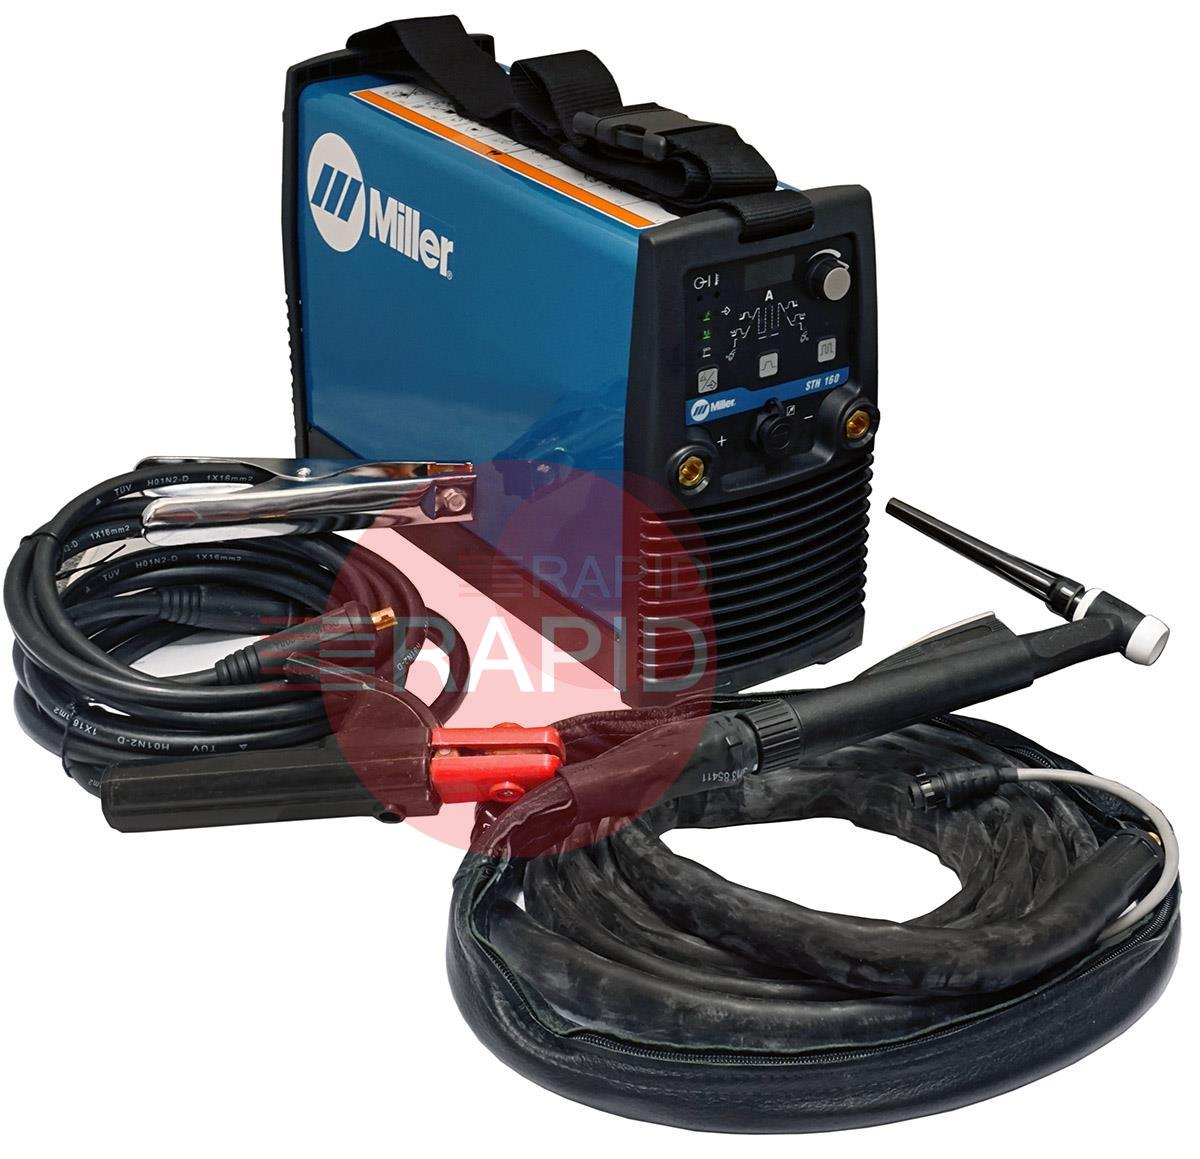 059016013PFS  Miller STH 160 DC Pulse Tig Welder Package with CK Flex-Loc Torch & MMA Cable Set, 230v